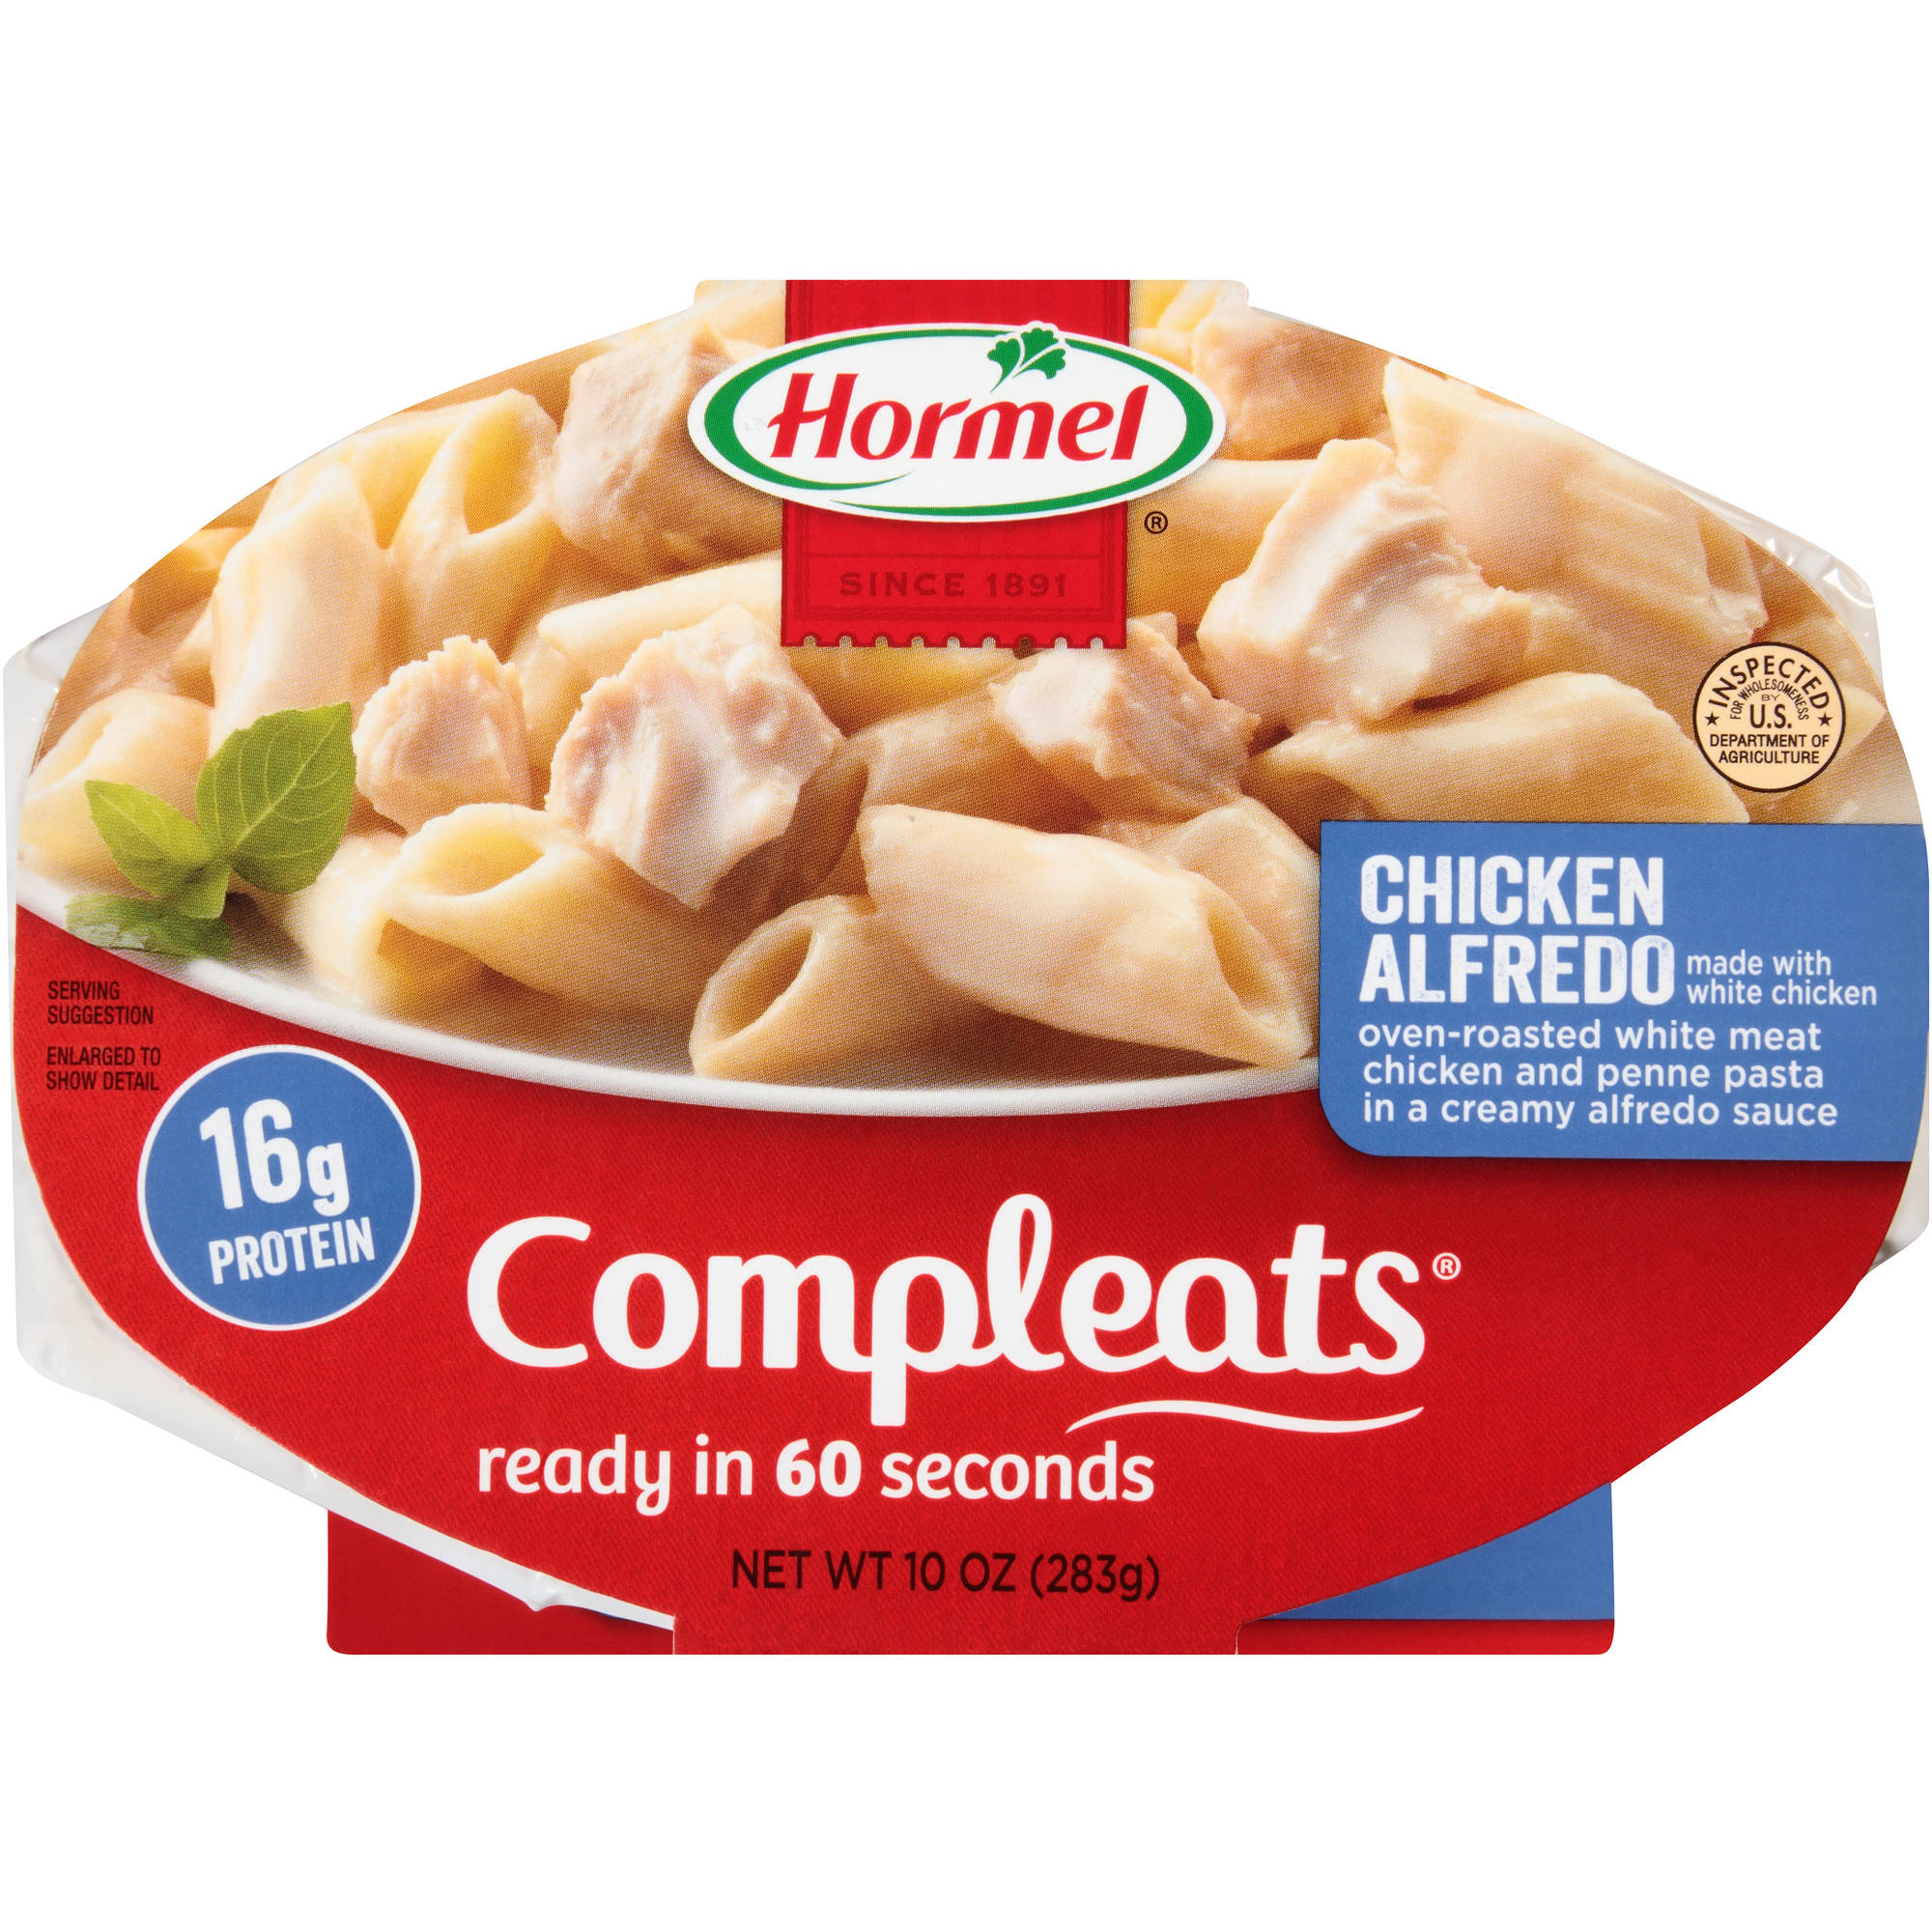 Hormel Chicken Alfredo w/Penne Pasta Compleats Microwave Bowls, 10 oz